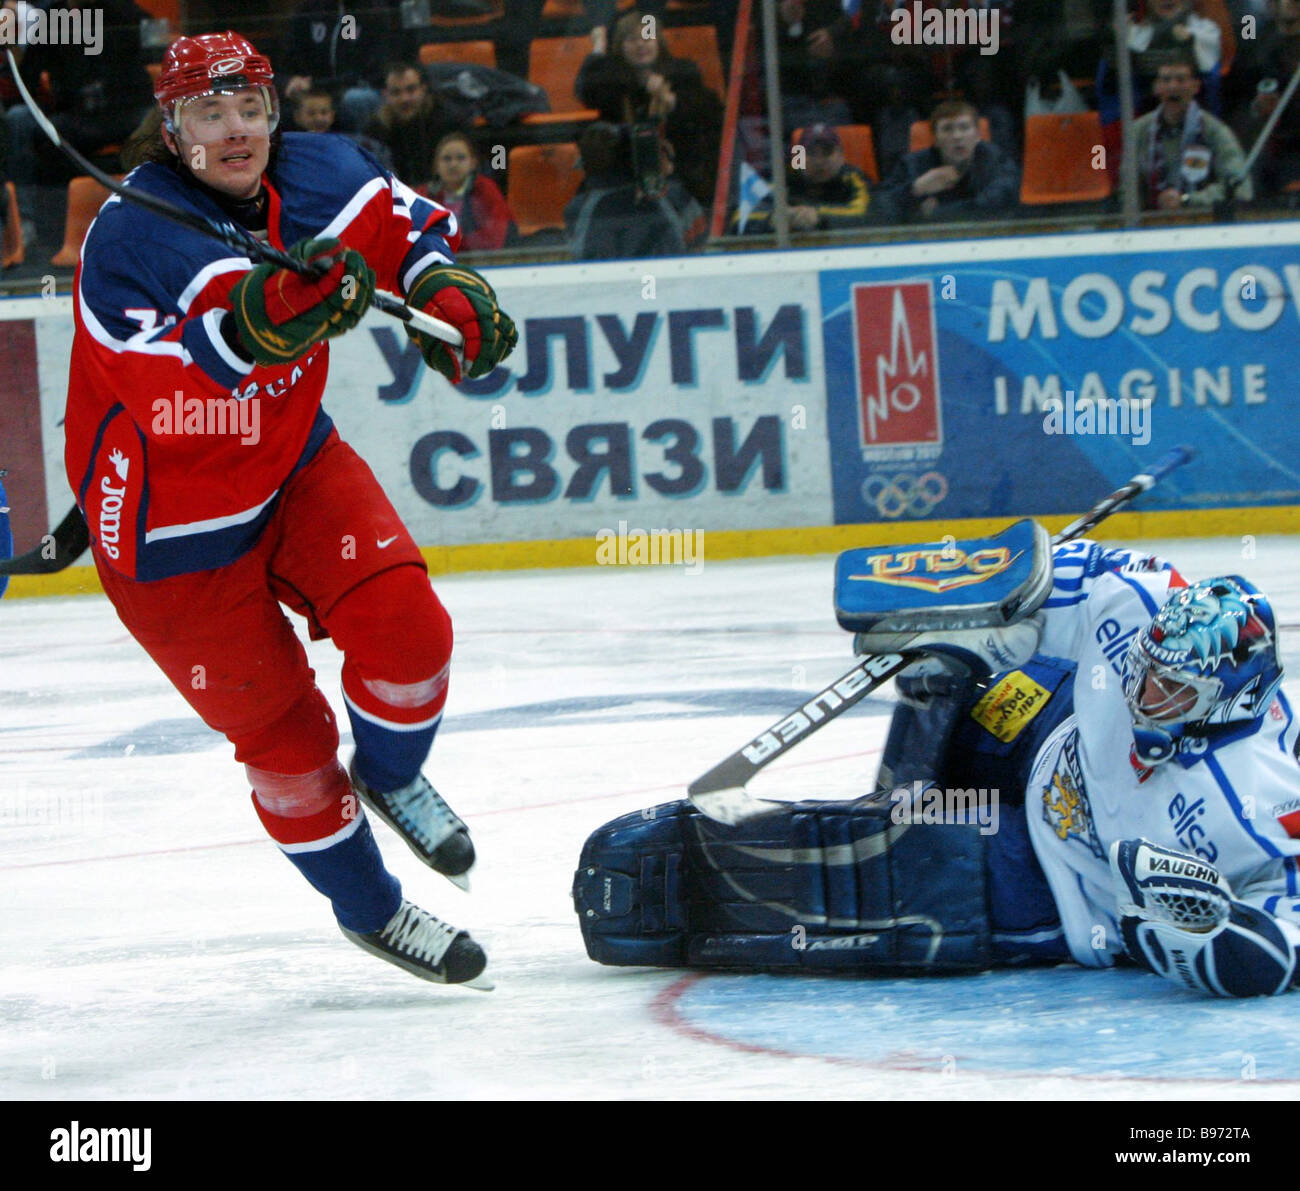 The Rosno Cup International Ice Hockey Tournament Russia Vs Finland